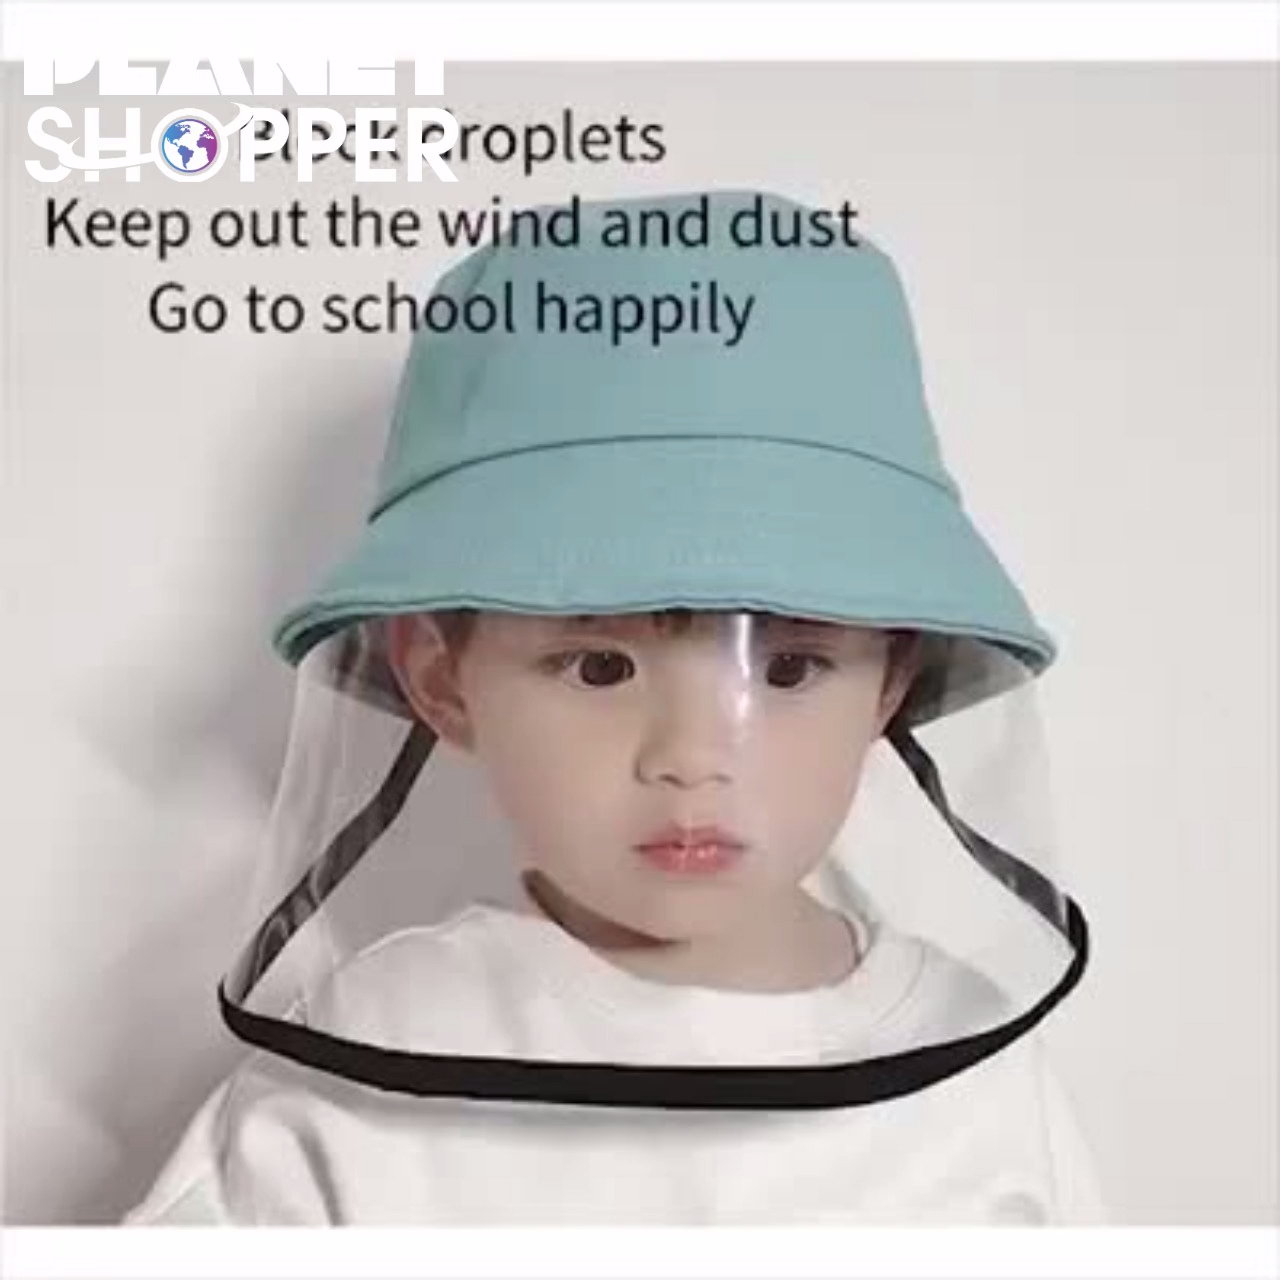 😍Protect your face, mouth, nose. Protect you from Dust, oil, bee insects, etc. Safe for children in school.😍Protect #your #face, #mouth, #nose. #Protect #you #from #Dust, #oil, #bee #insects, #etc. #Safe #for #children #in #school. #Hat